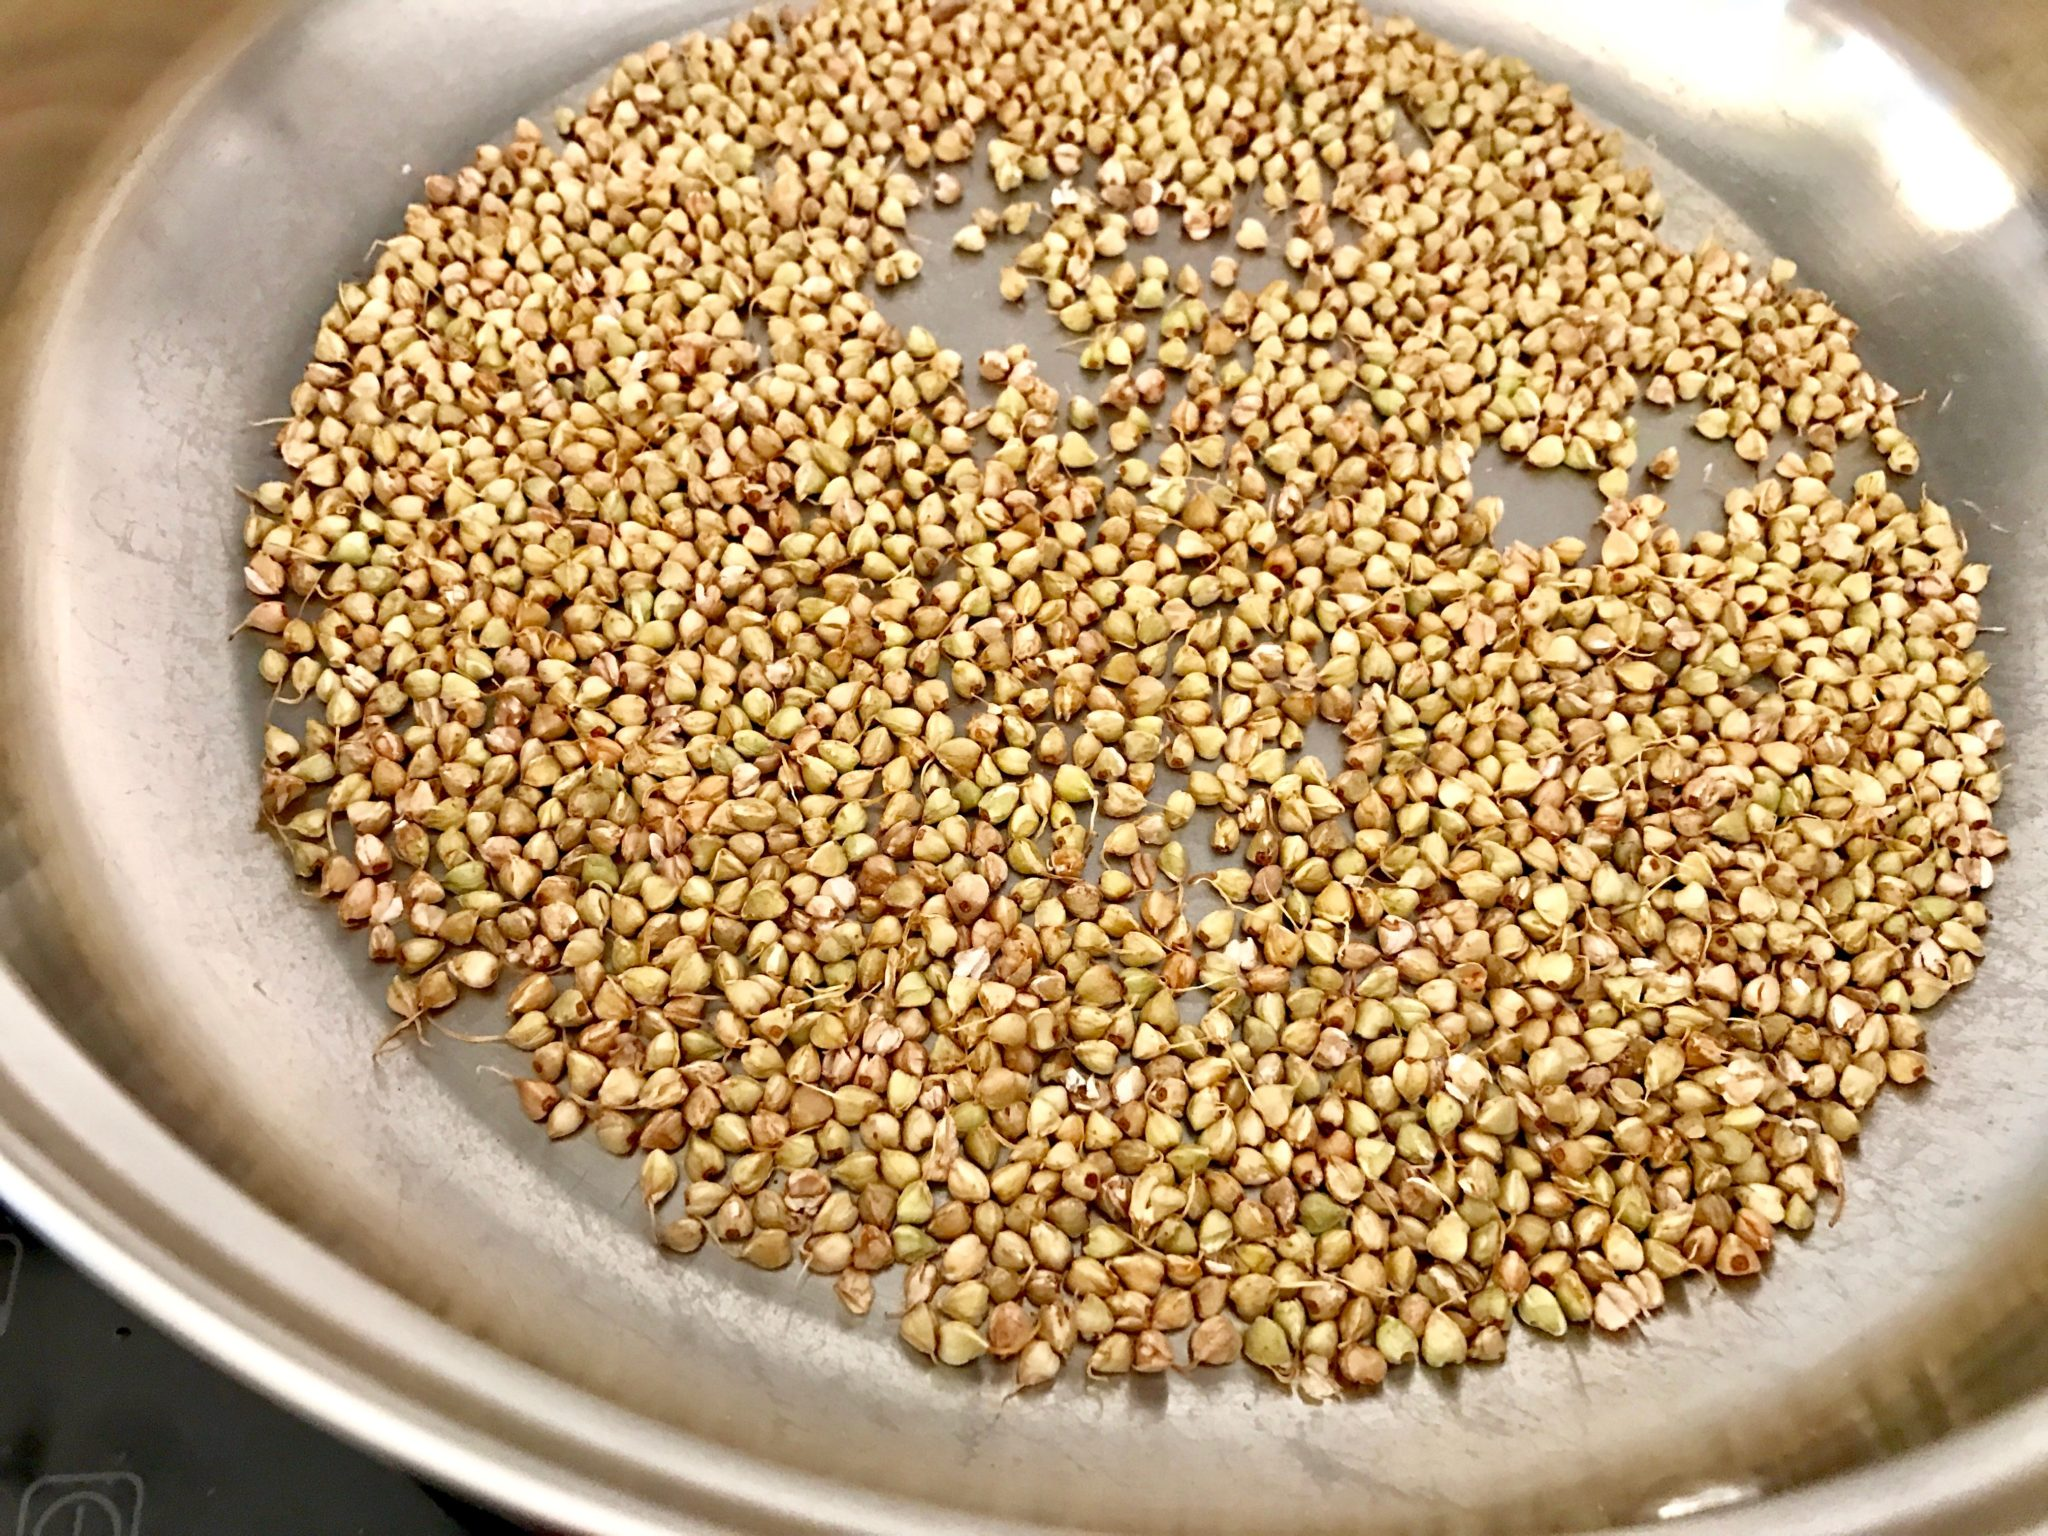 sprouted buckwheat after being toasted